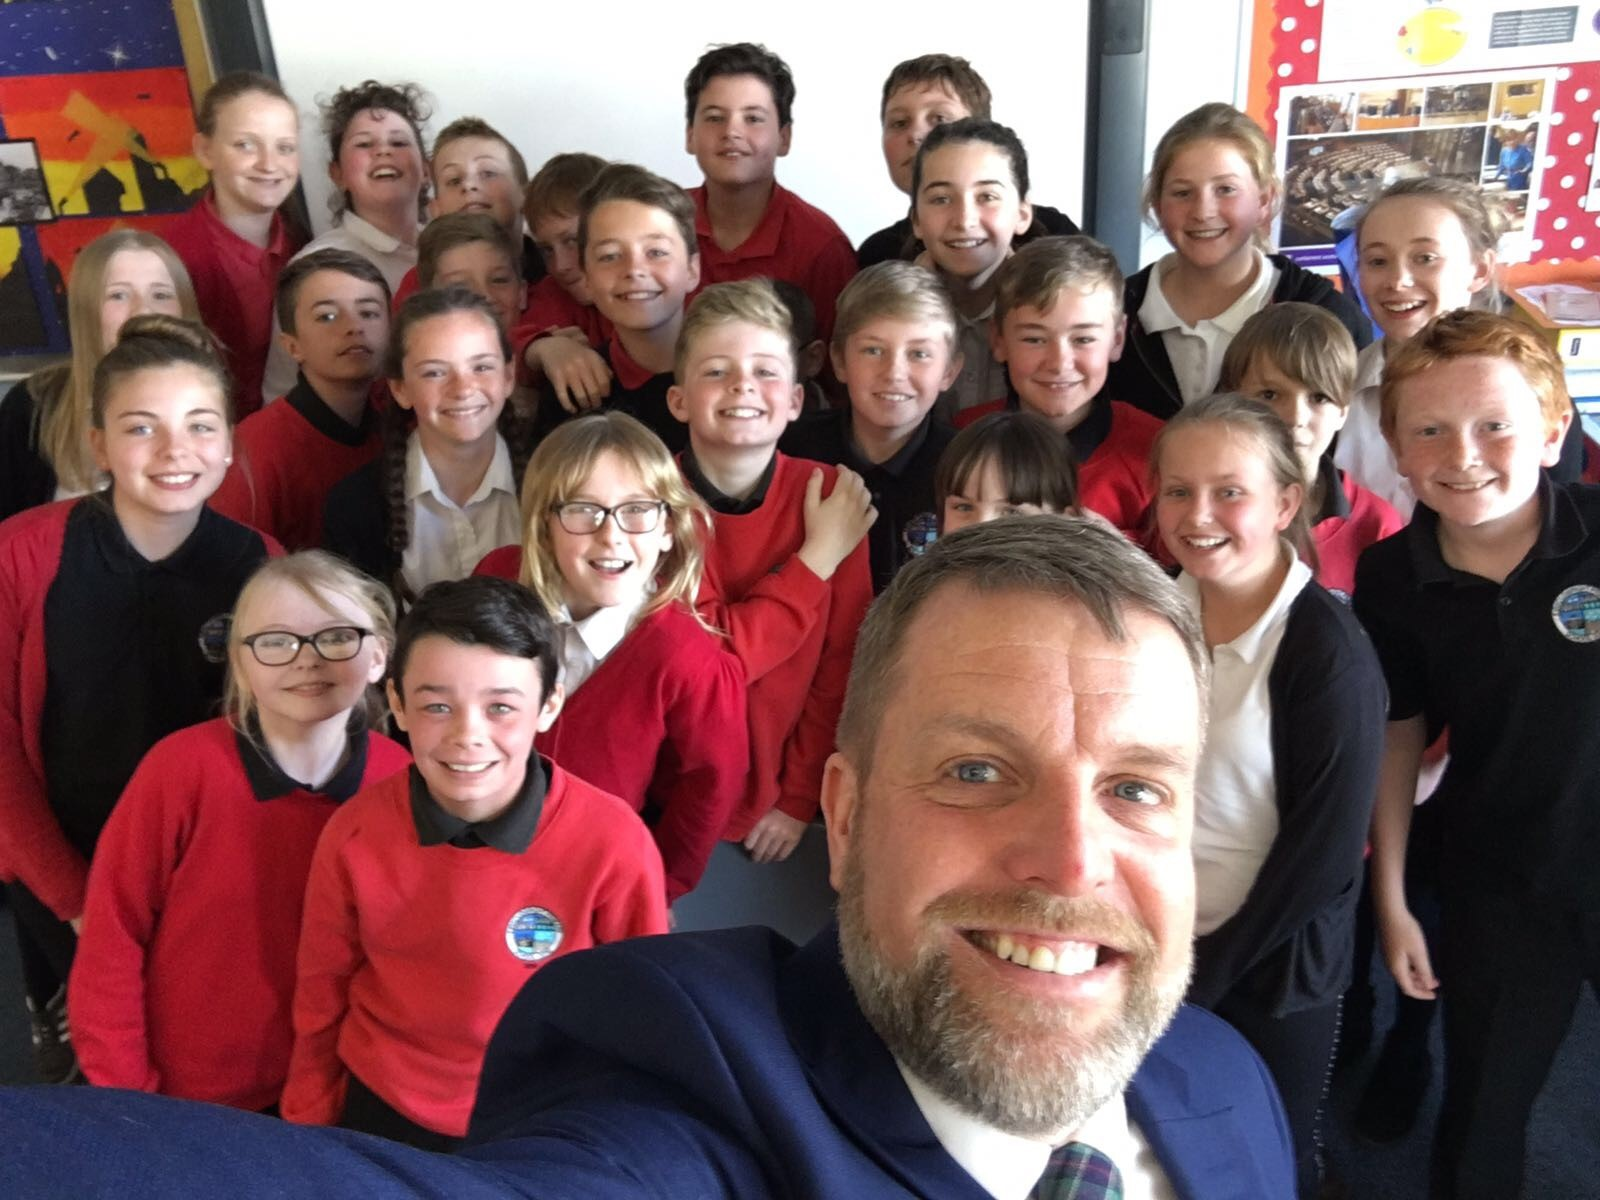 24.04.17 Kirkcudbright Primary School